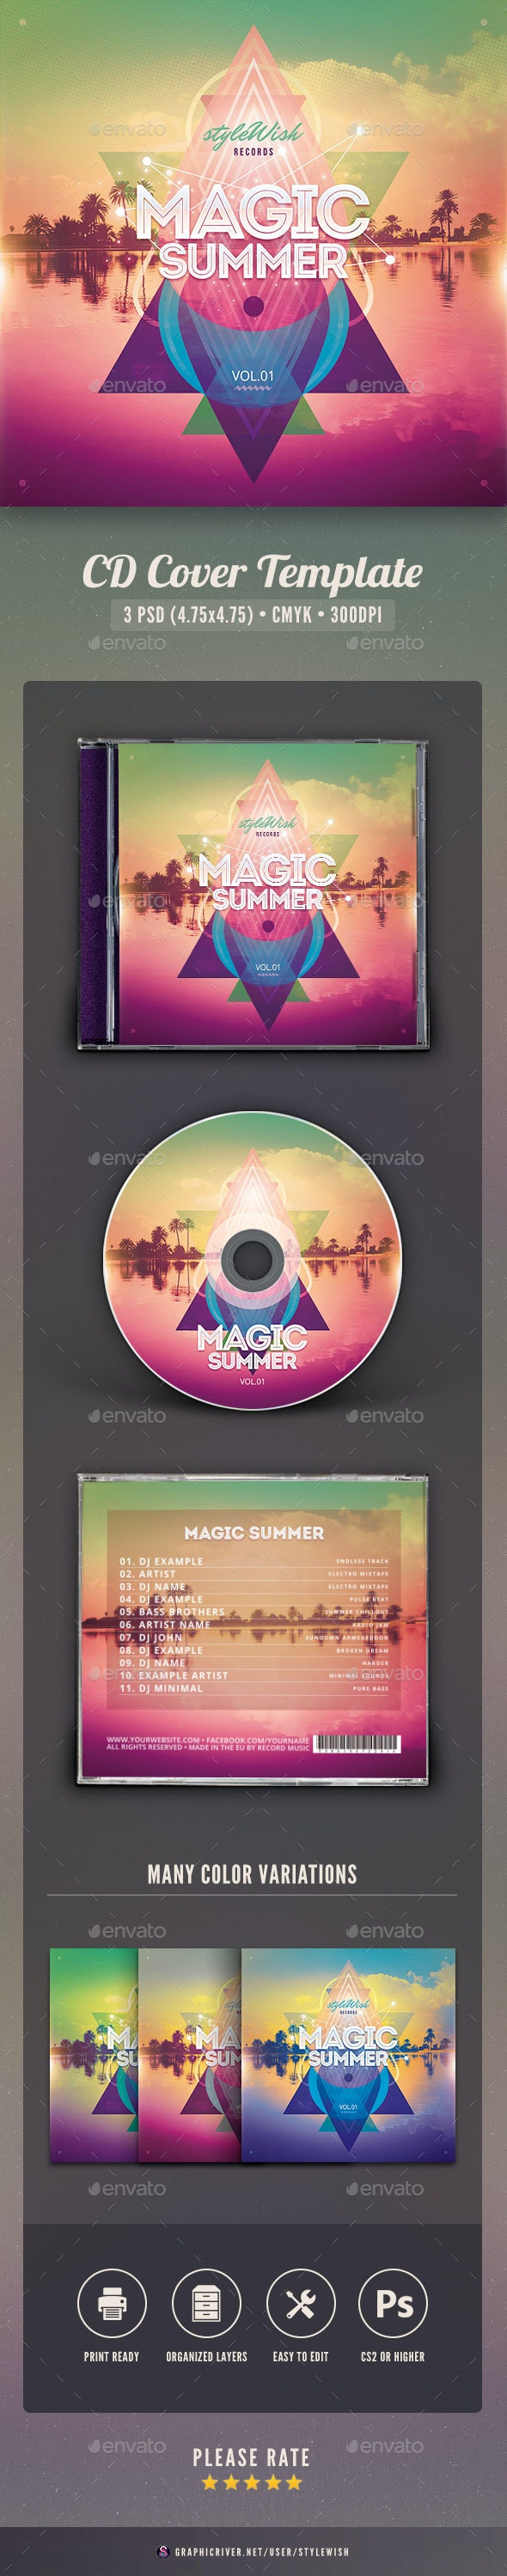 Magic Summer CD Cover Artwork - CD & DVD Artwork Print Templates